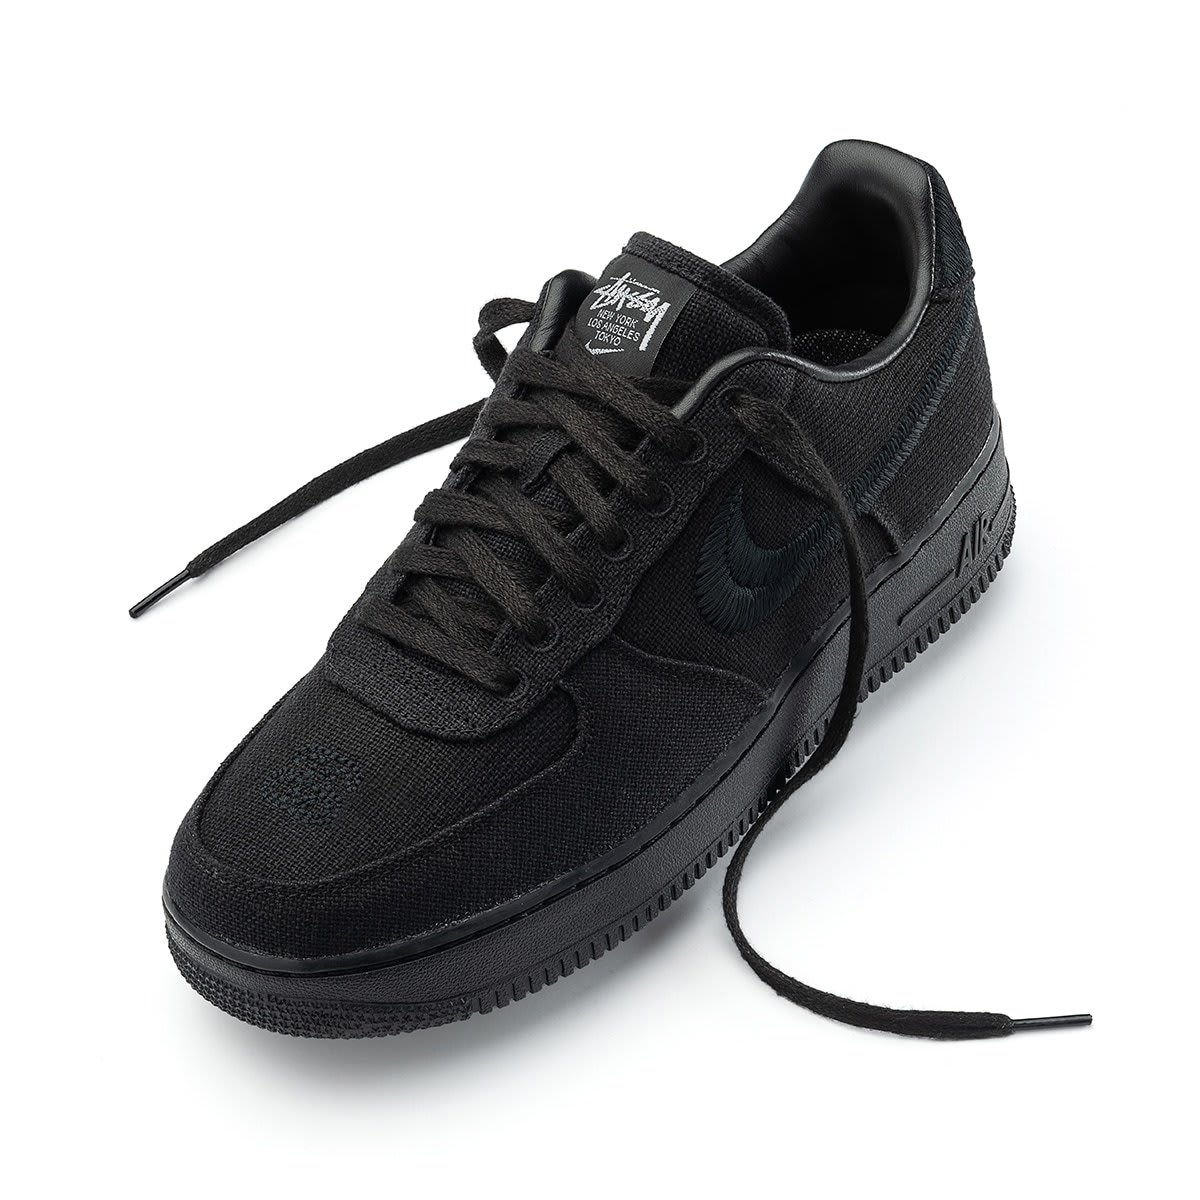 Stussy x Nike Air Force 1 Low 'Black' Front